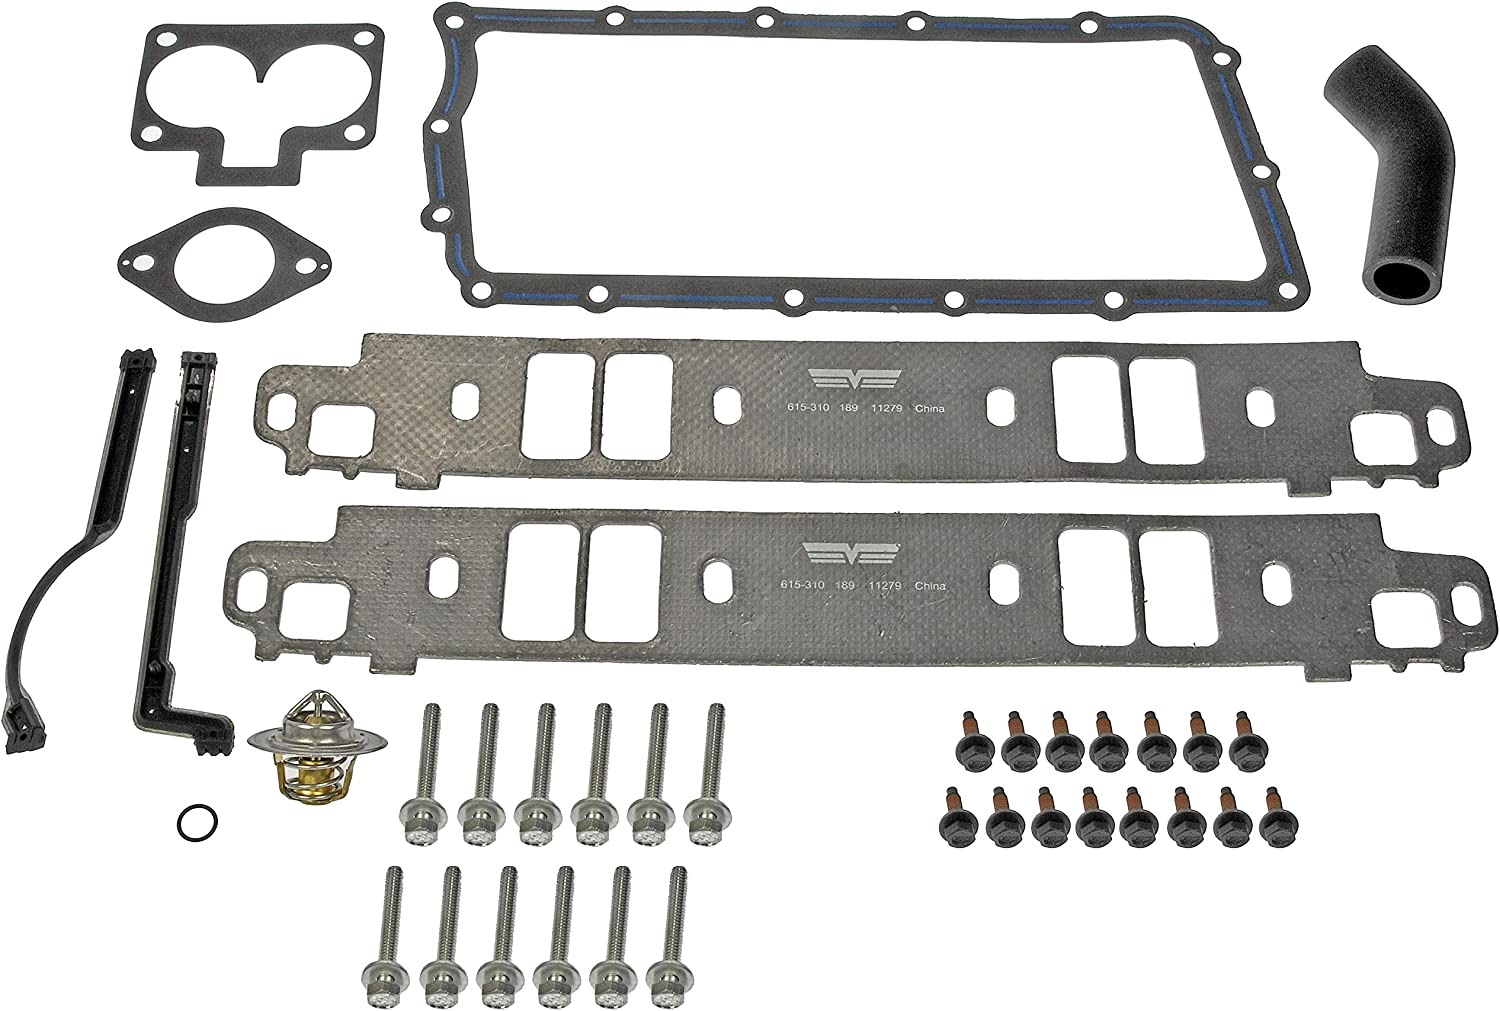 Amazon Com Dorman 615 310 Engine Intake Manifold Gasket Set For Select Dodge Jeep Models Black Automotive